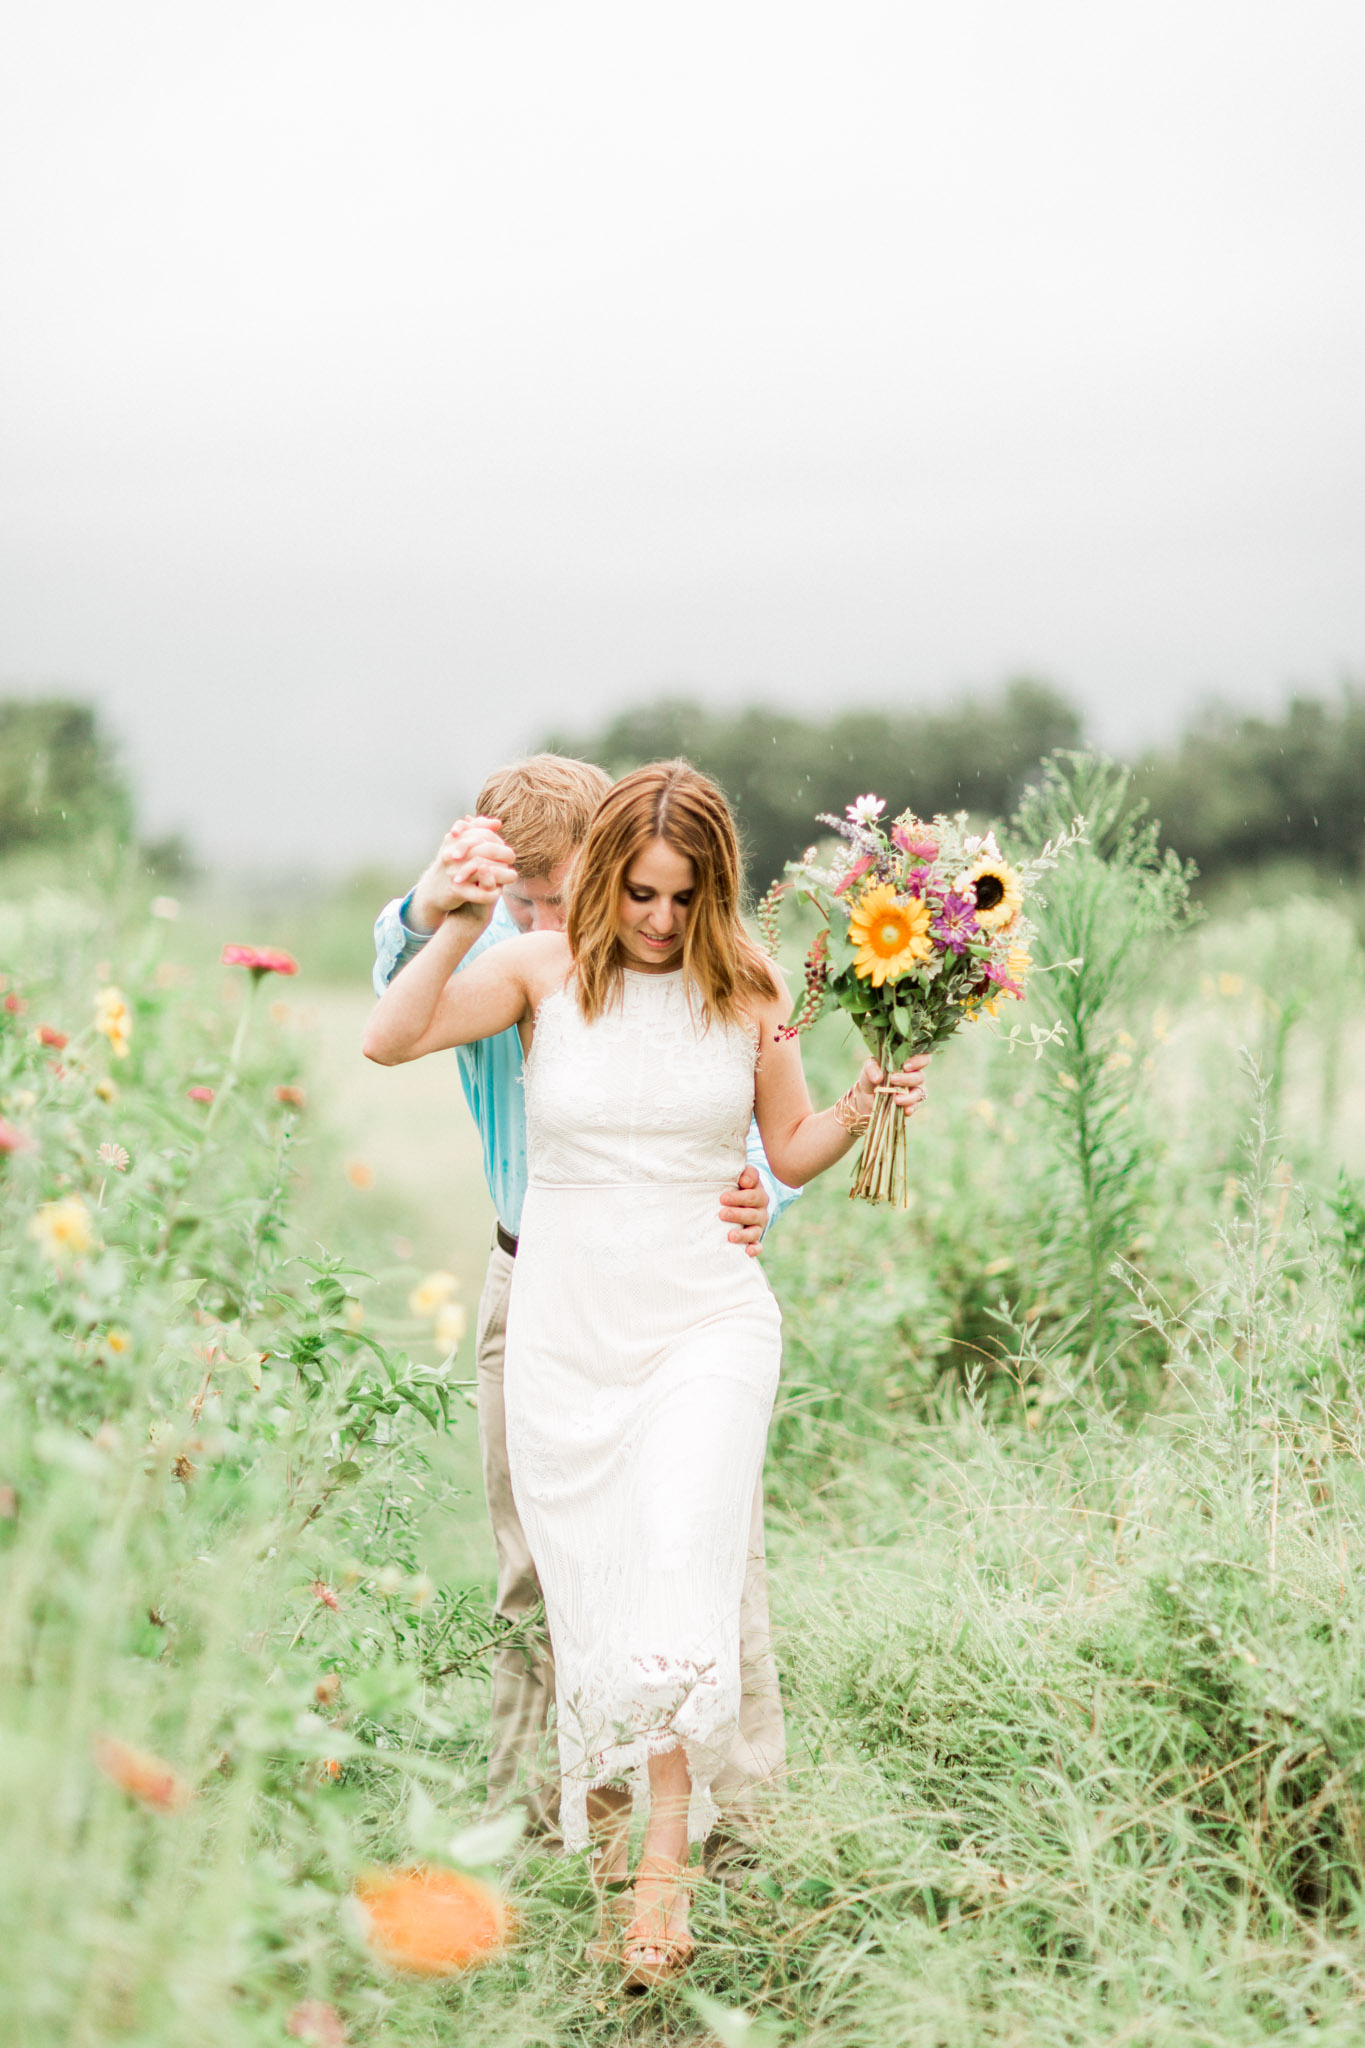 Wichita Falls, TX Engagement Photos - Light and Airy Photography